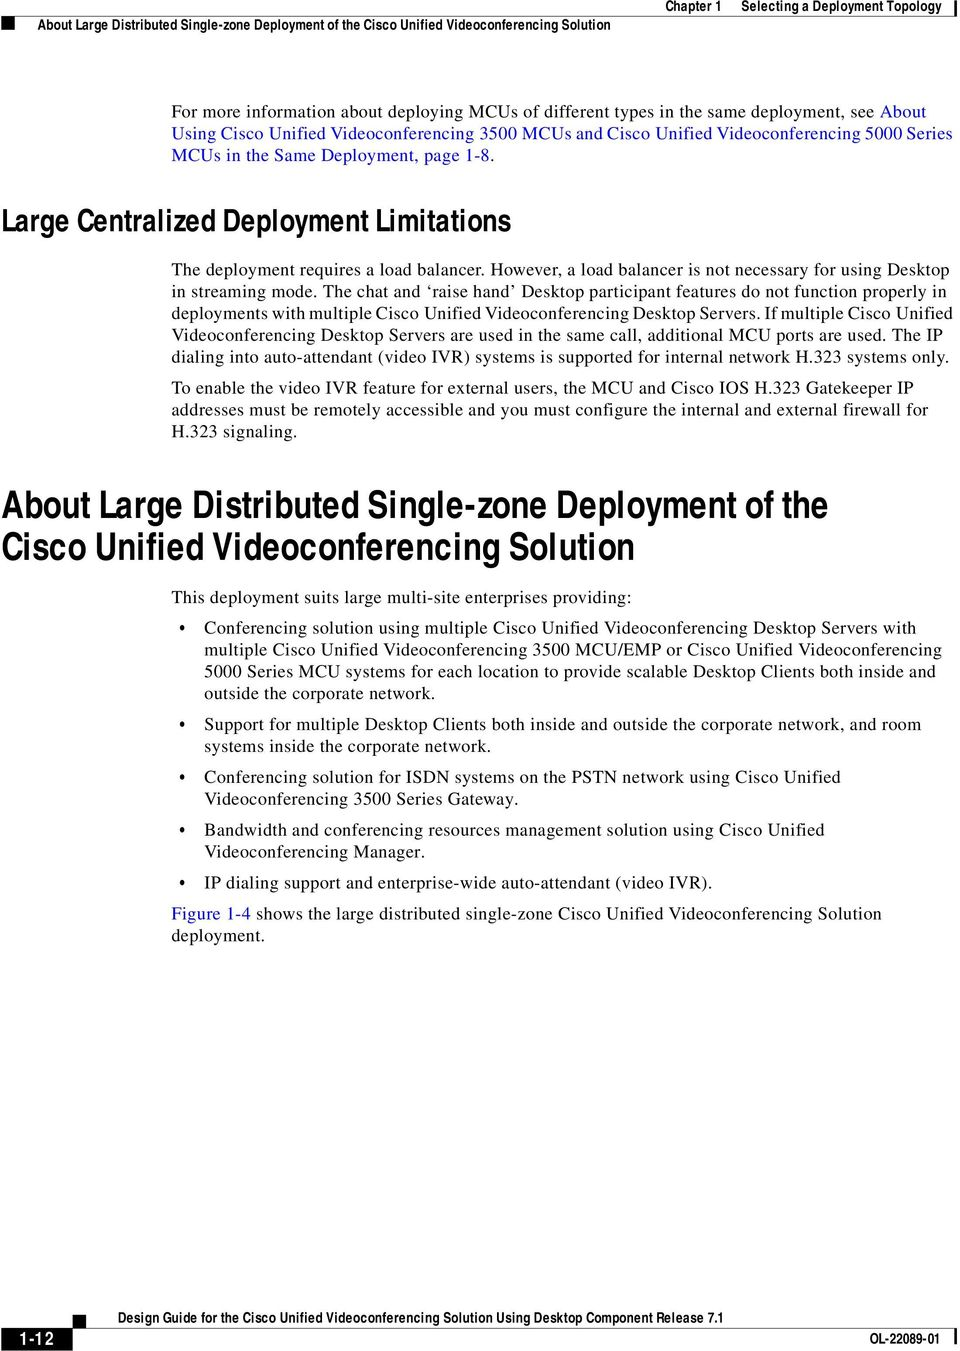 Large Centralized Deployment Limitations The deployment requires a load balancer. However, a load balancer is not necessary for using Desktop in streaming mode.